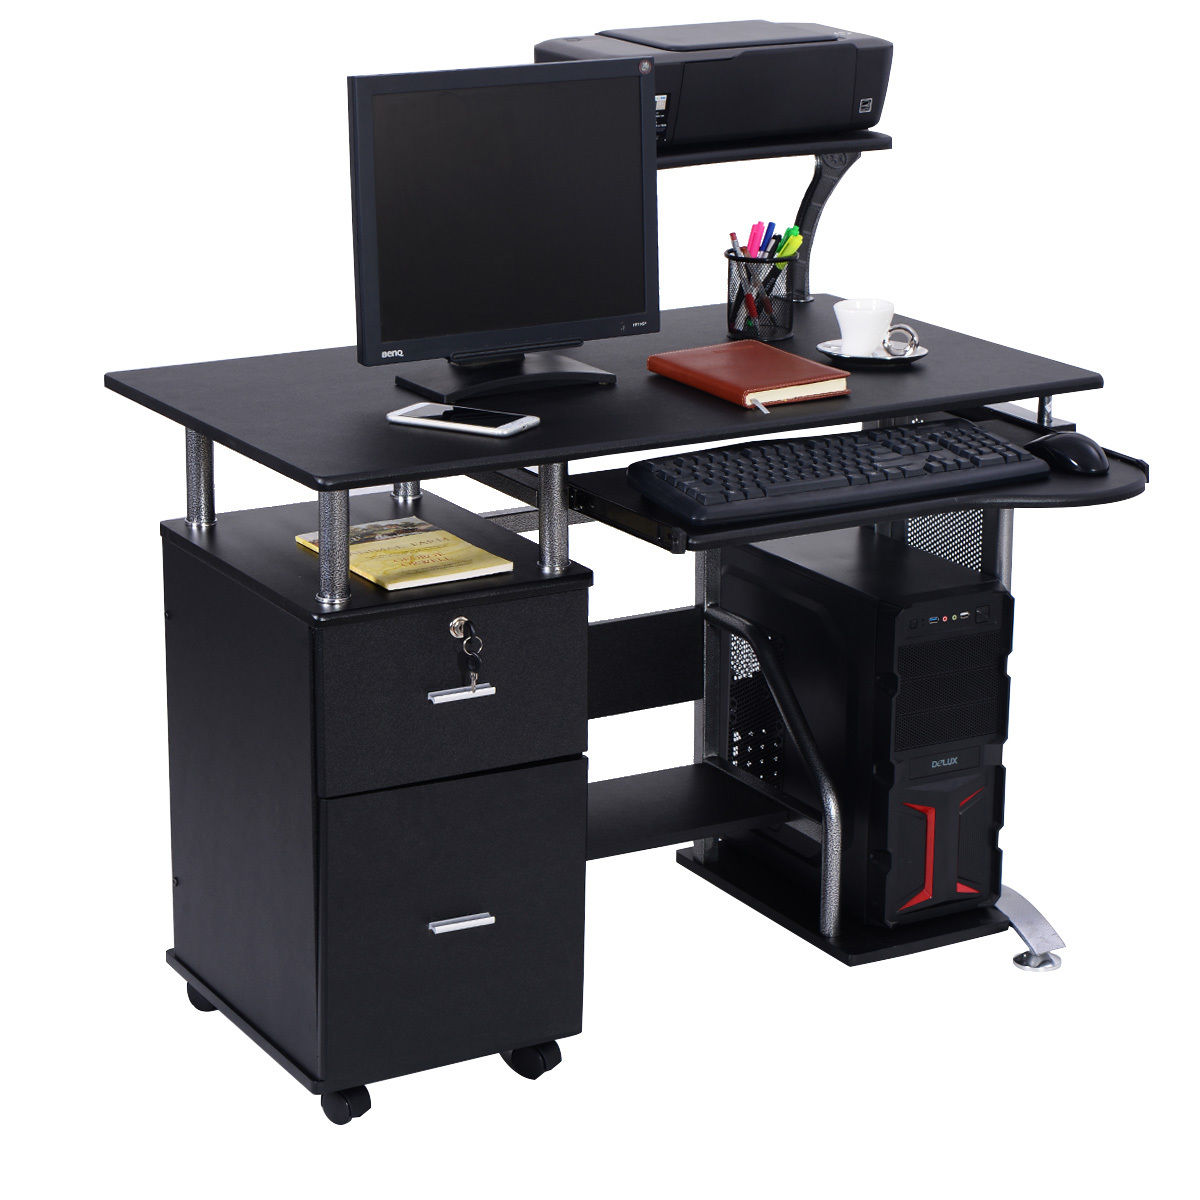 Costway Computer Desk PC Laptop Table WorkStation Home Office Furniture W/  Printer Shelf